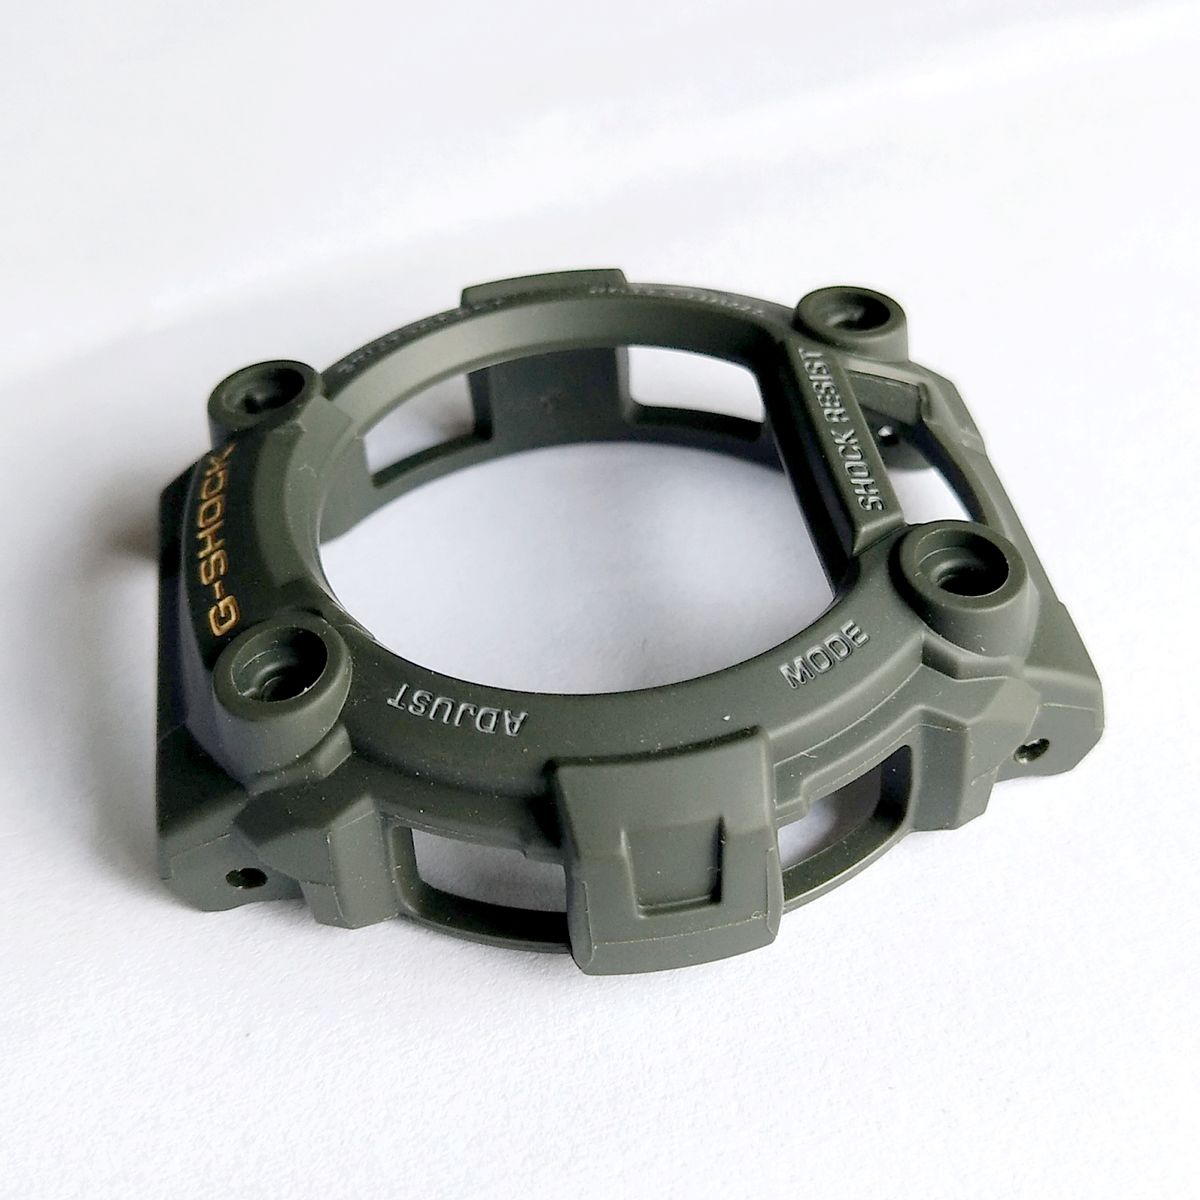 Bezel CAsio G-Shock G-7900 VErde + 4 parafuso do Bezel  - E-Presentes